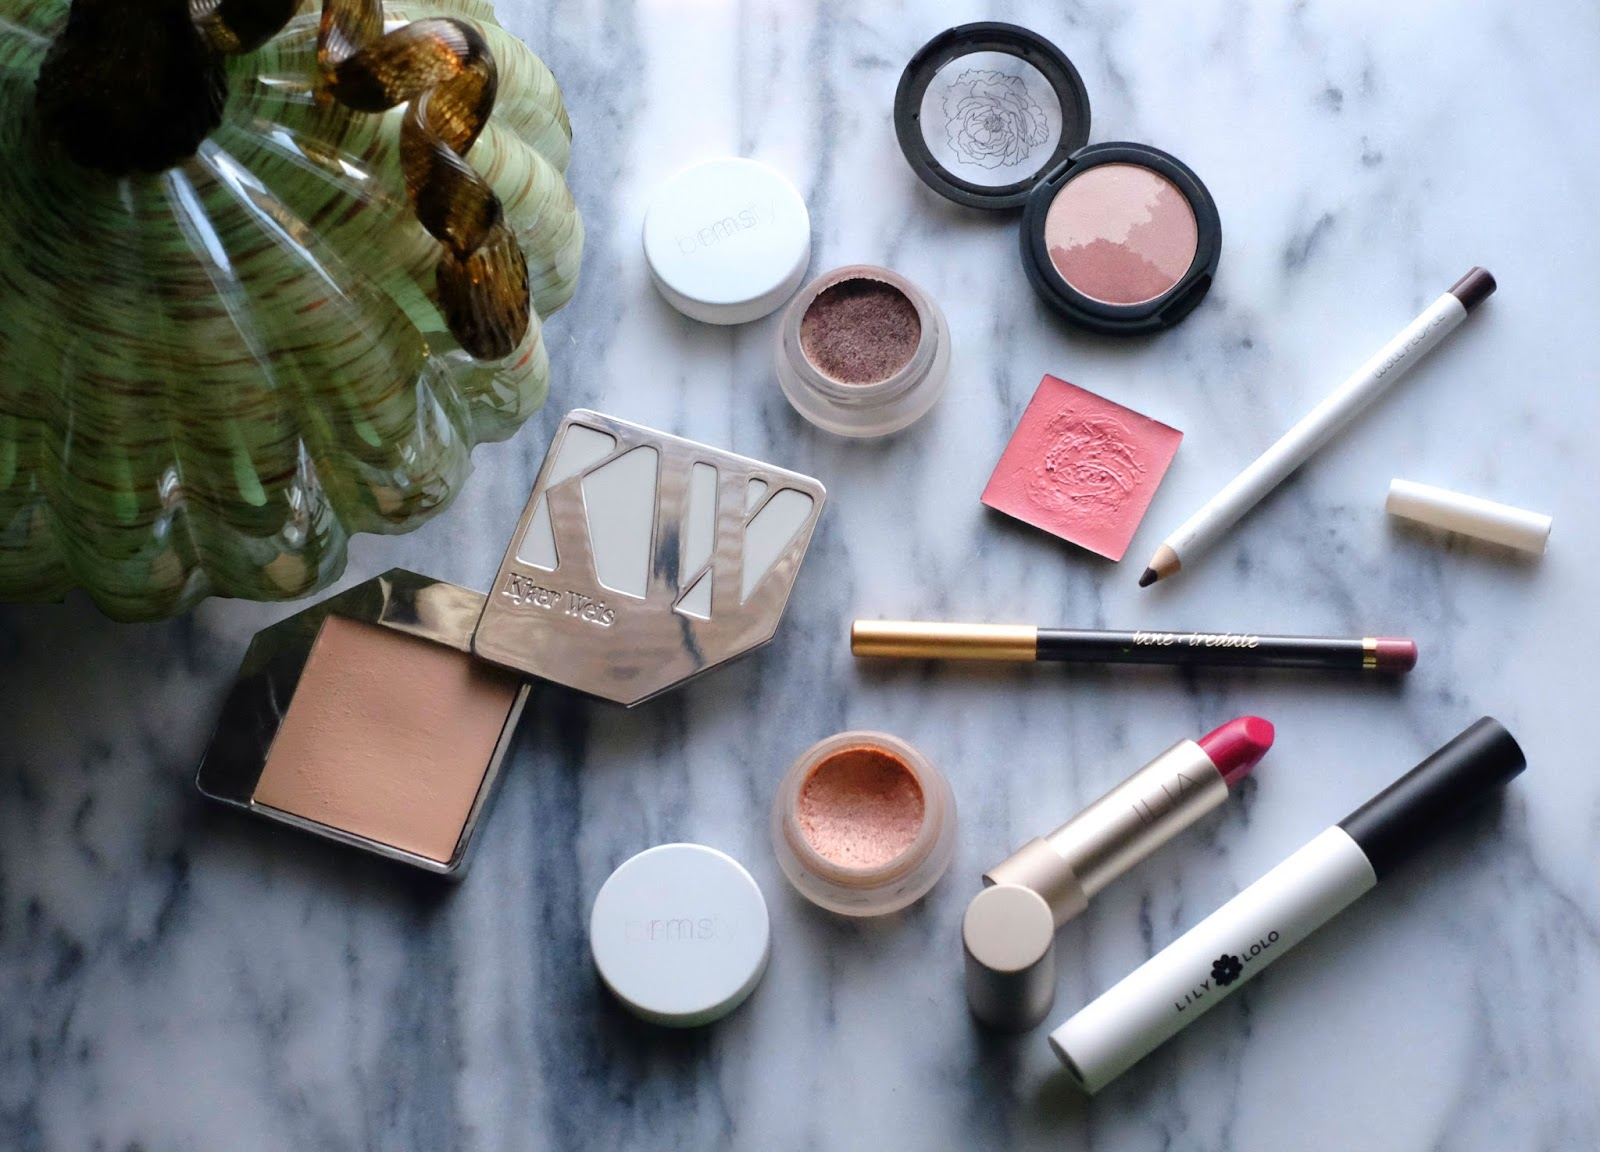 Communication on this topic: Master Cleanse Your Makeup Bag, master-cleanse-your-makeup-bag/